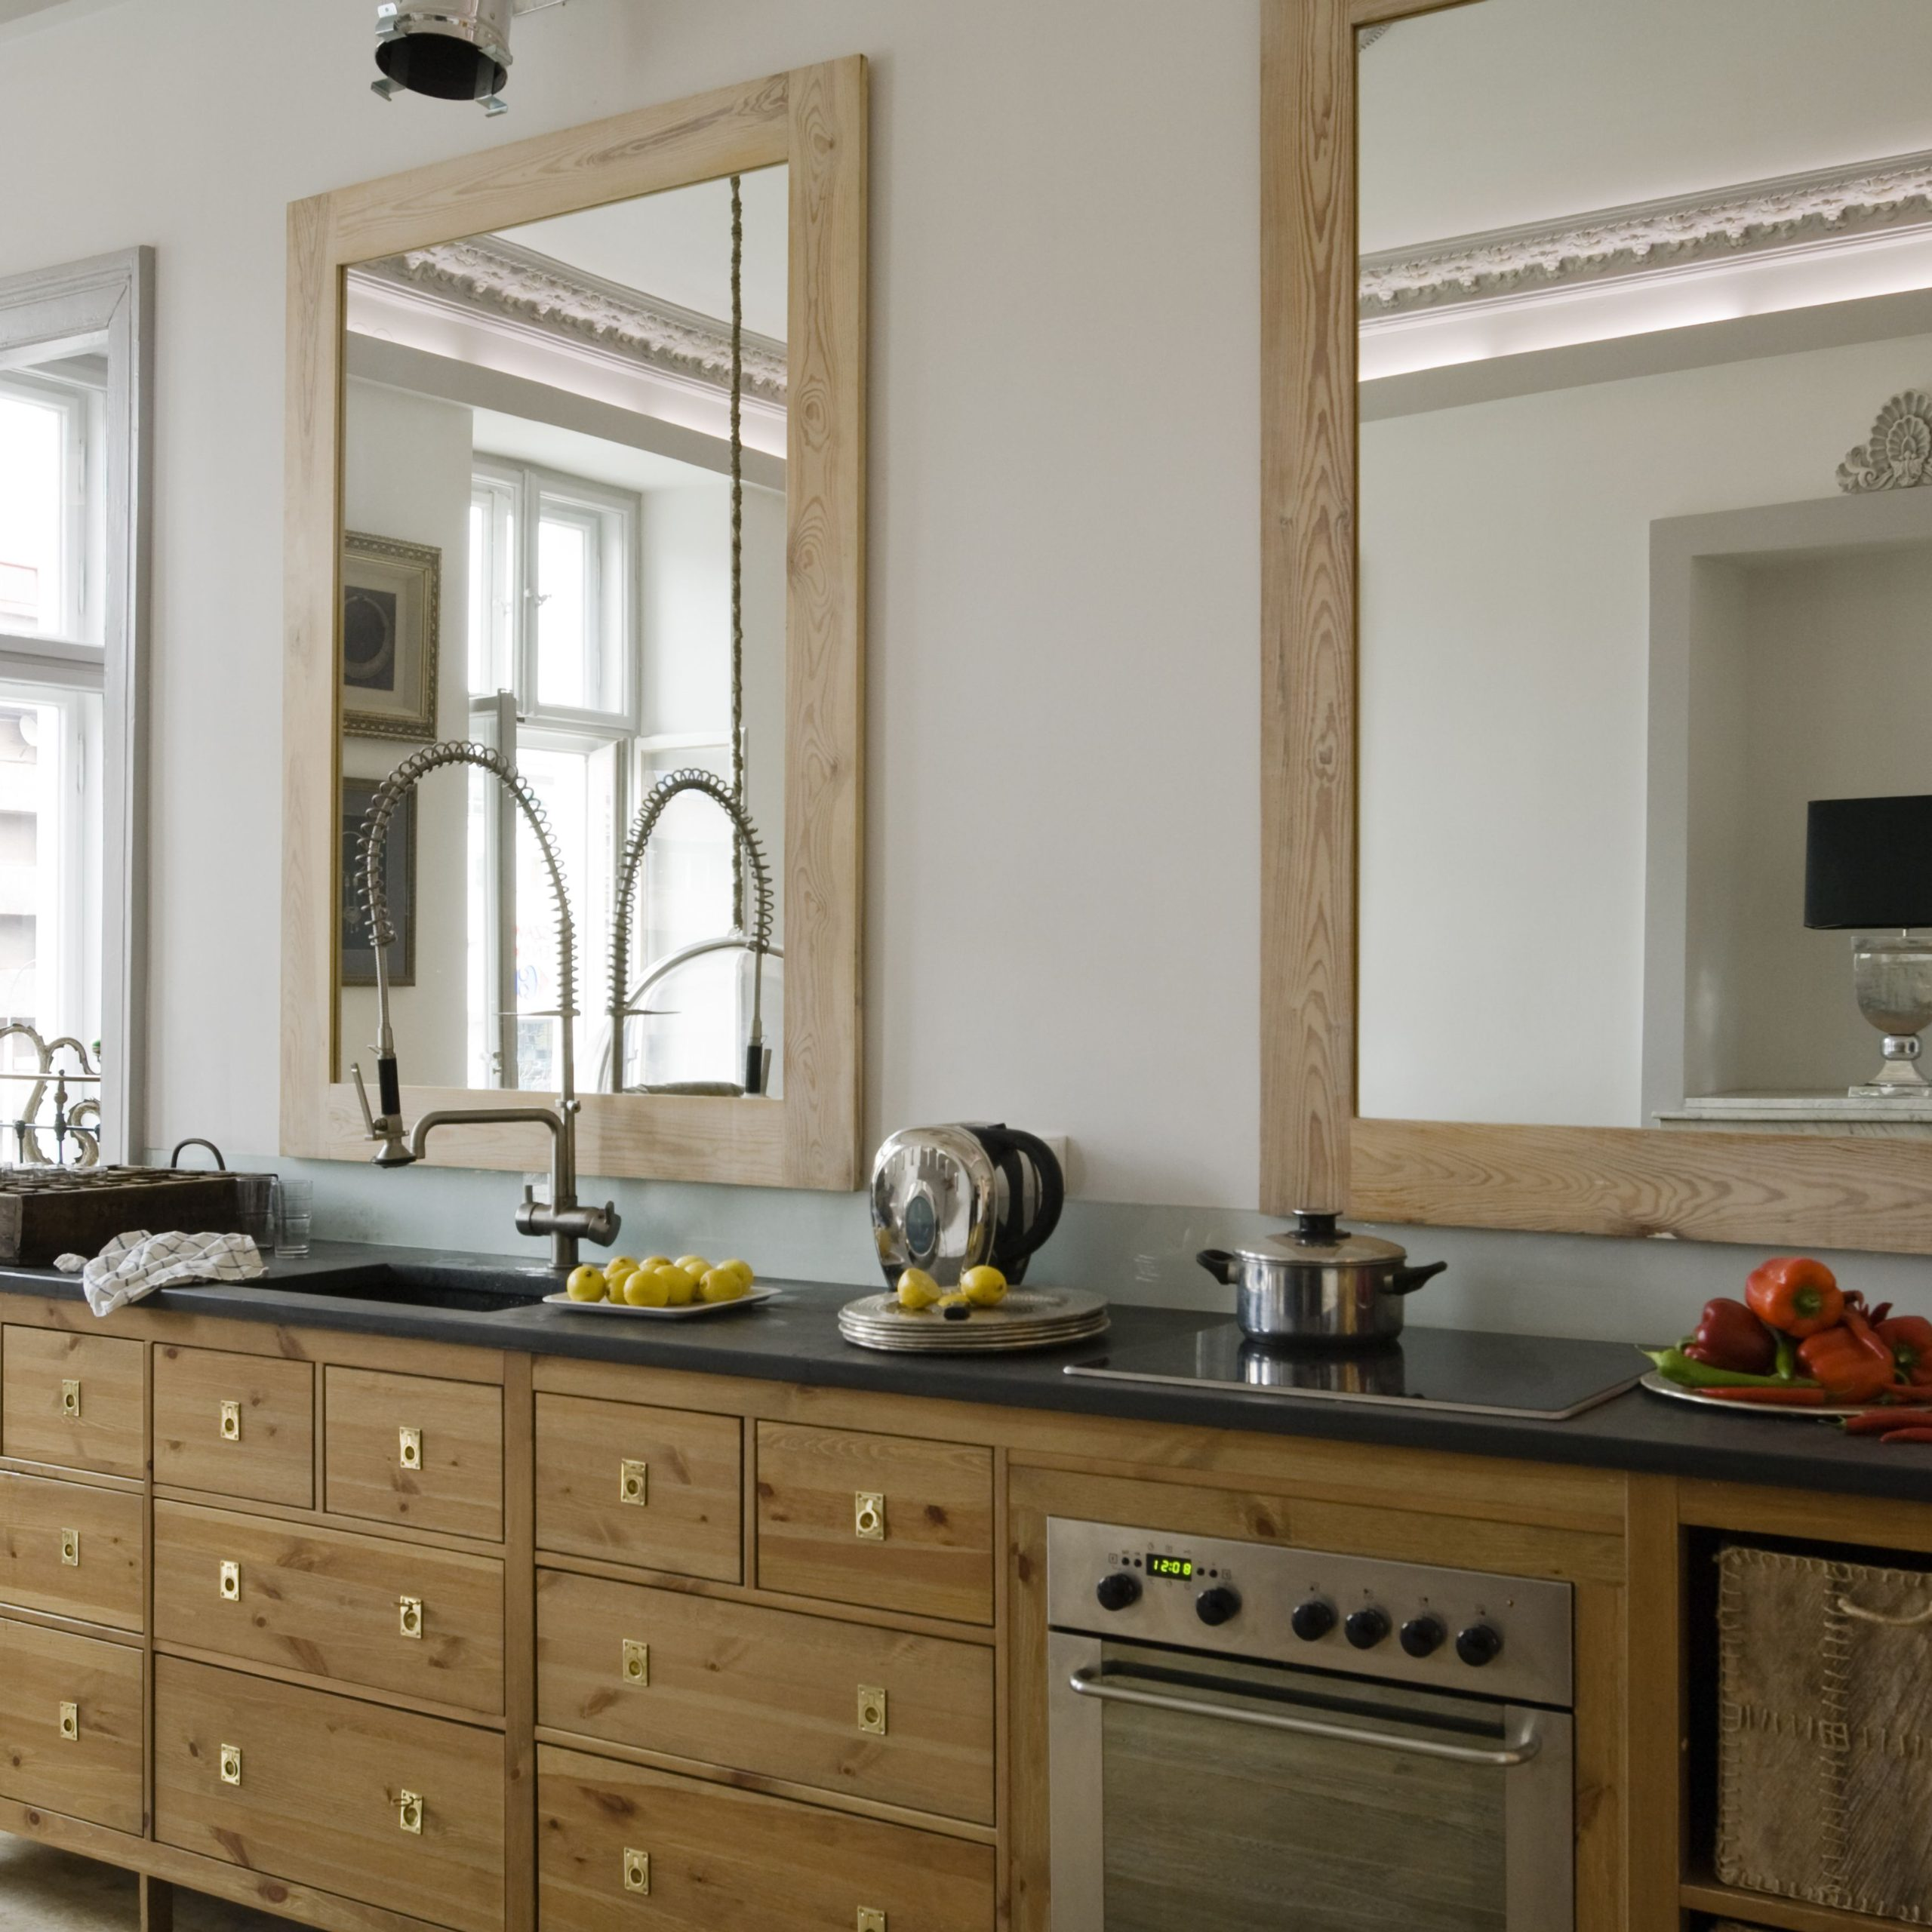 Mirrors-in-kitchens.-scaled 80+ Unusual Kitchen Design Ideas for Small Spaces in 2021